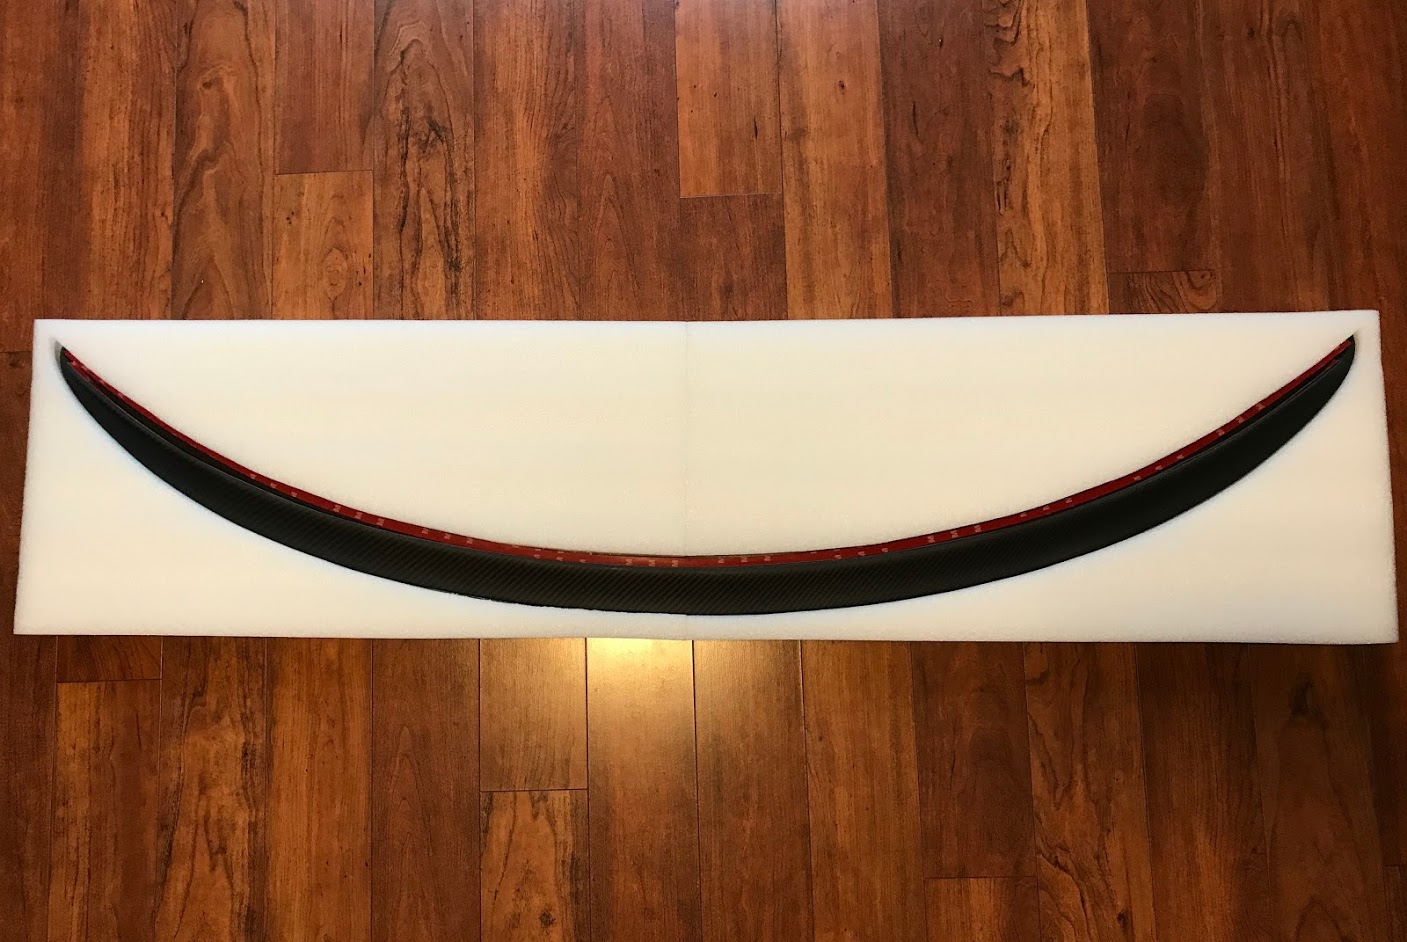 Model 3 spoiler packaging